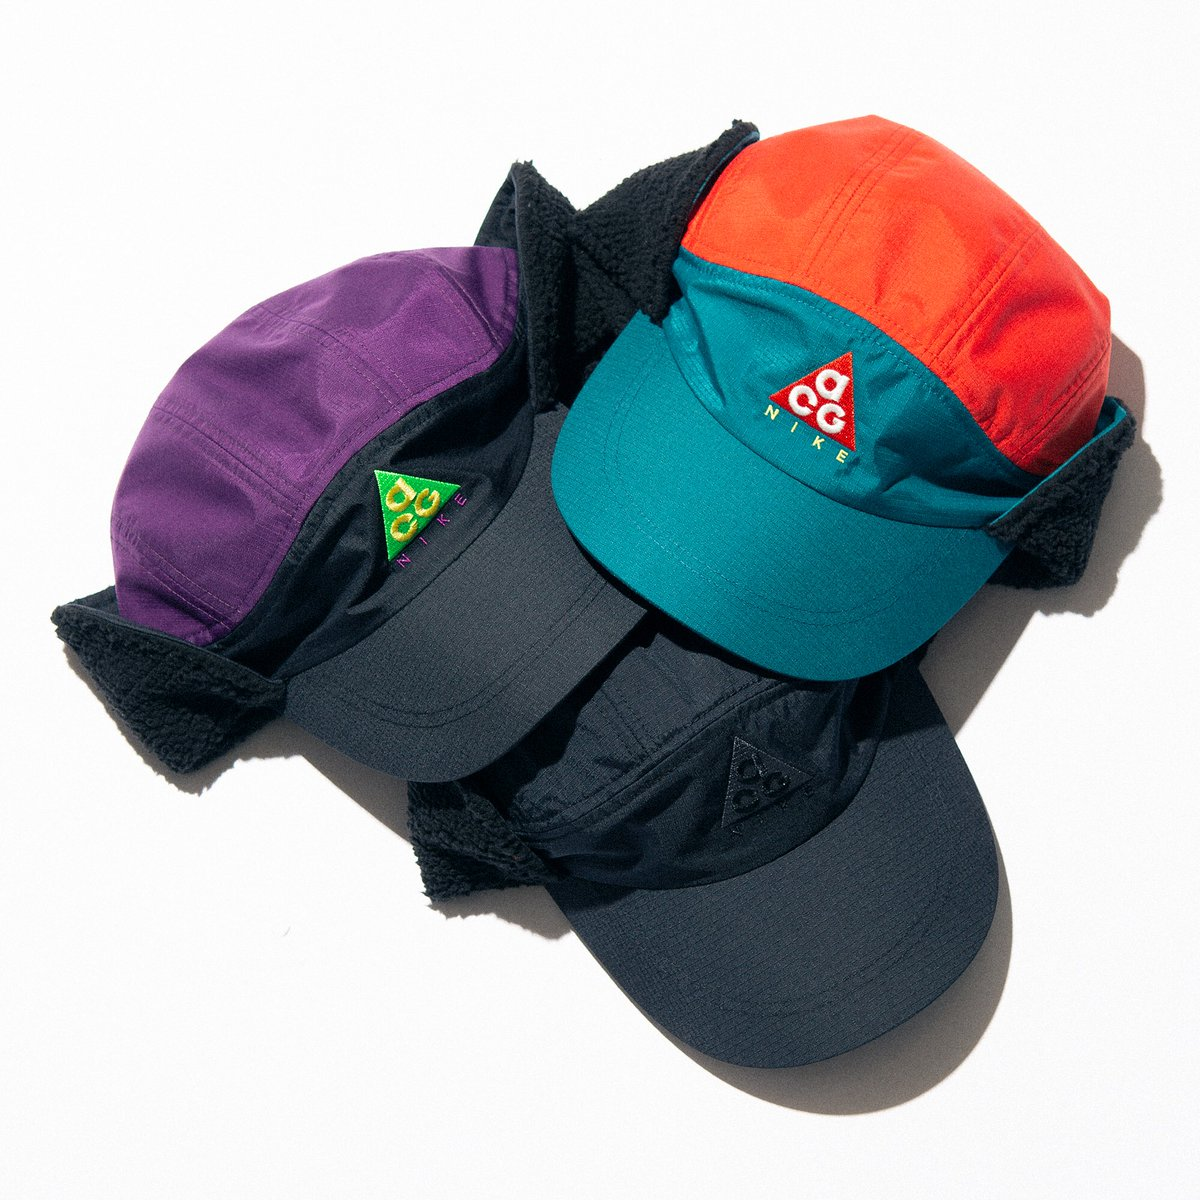 99baabaf Deconstructed nylon hats with curved brims and 90's-inspired color ways.  Fleece ear flaps to be worn up or down, for all climates and temps.